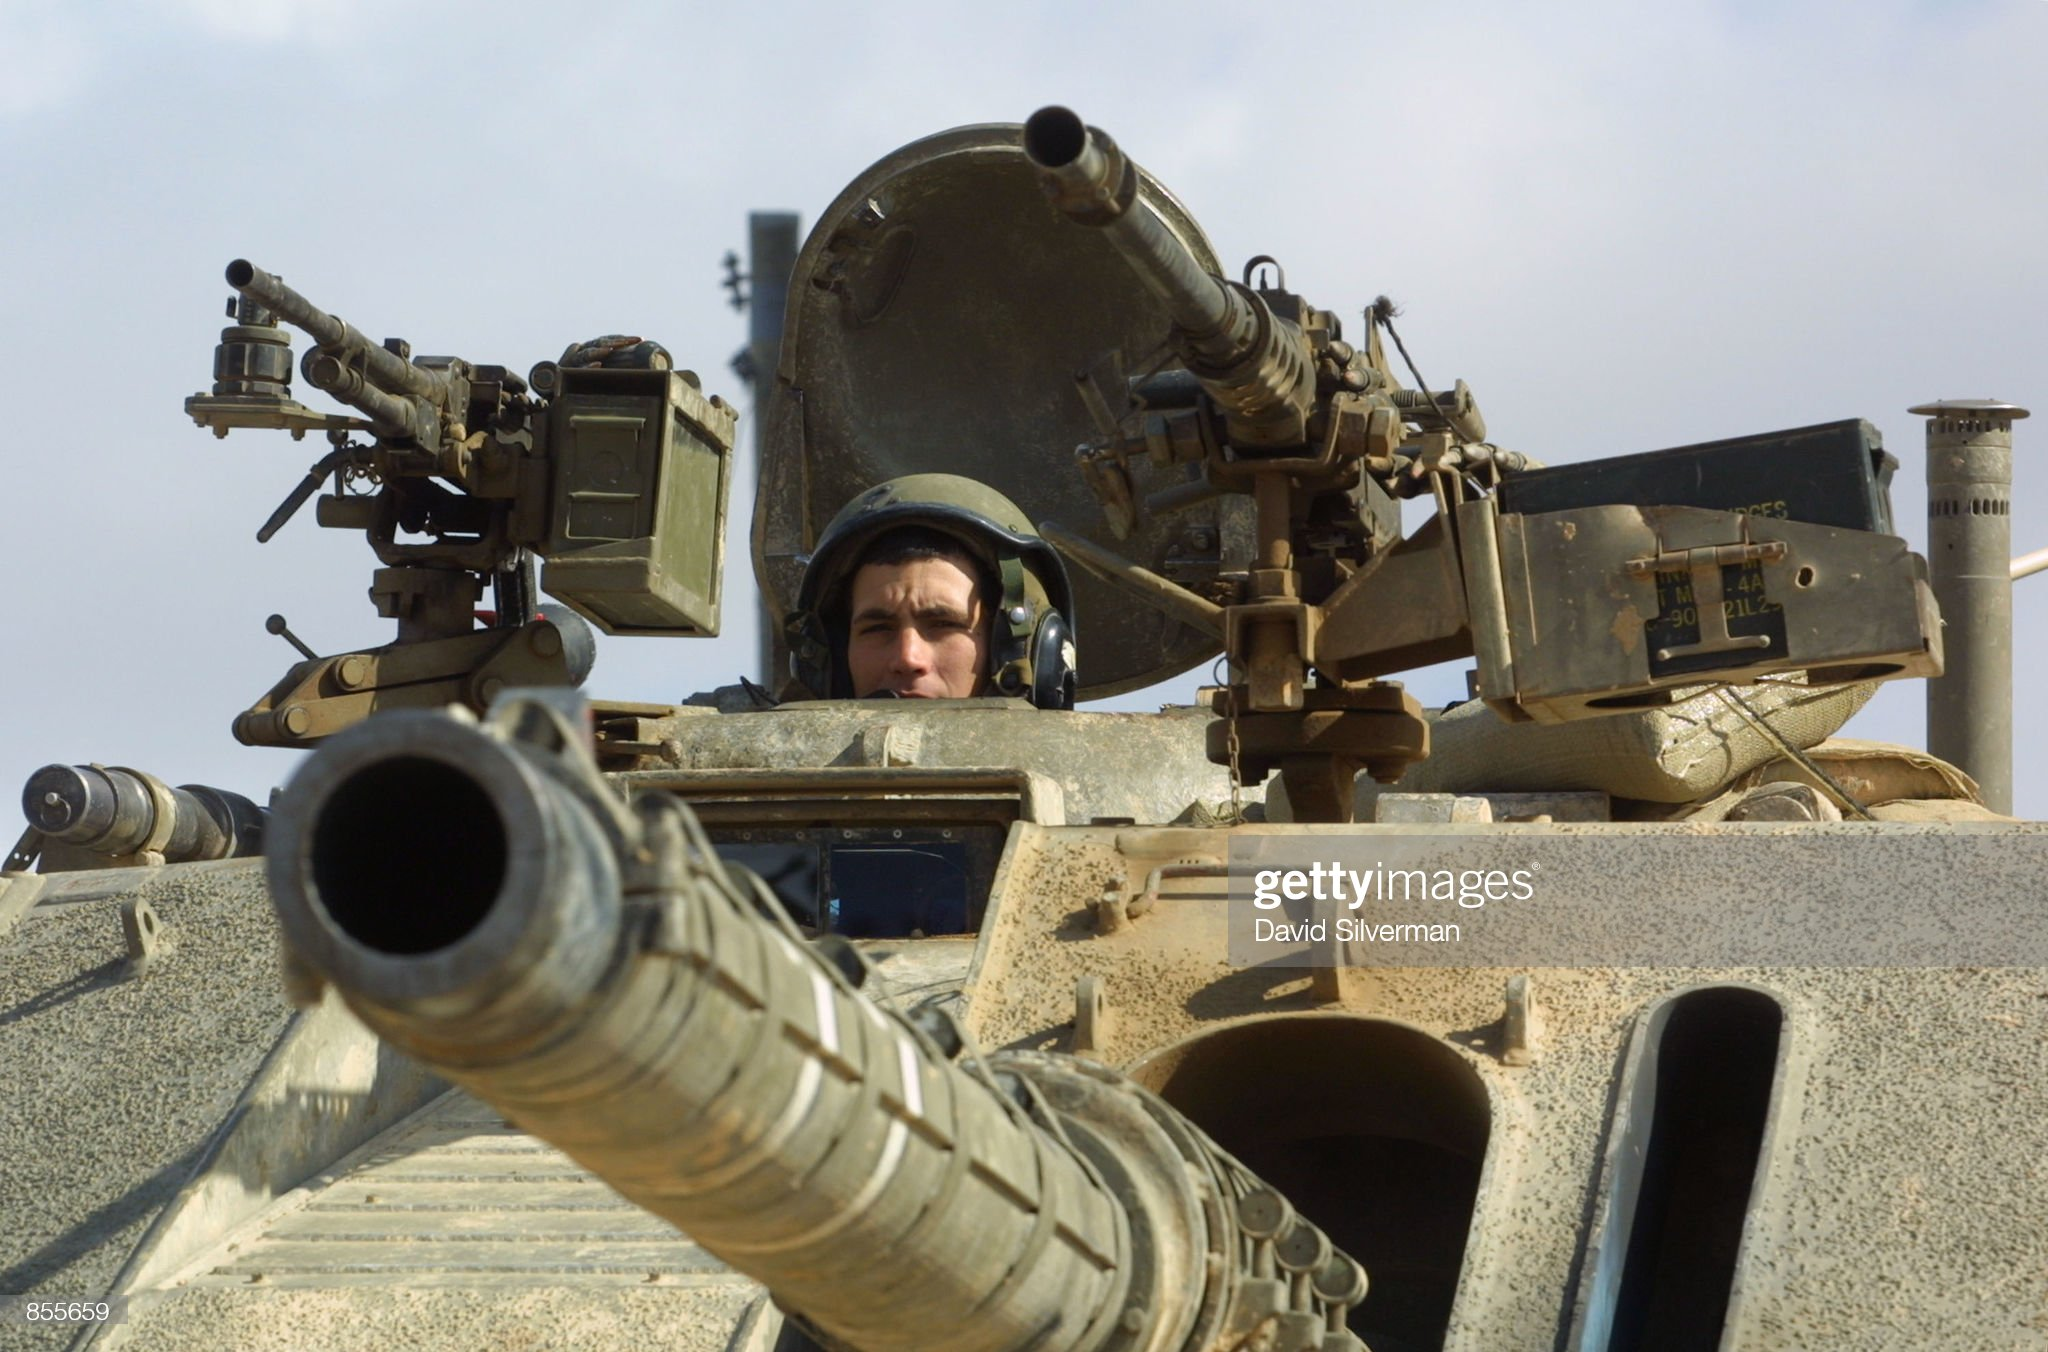 https://media.gettyimages.com/photos/an-israeli-soldier-looks-out-of-his-tank-which-maintains-a-position-picture-id855659?s=2048x2048